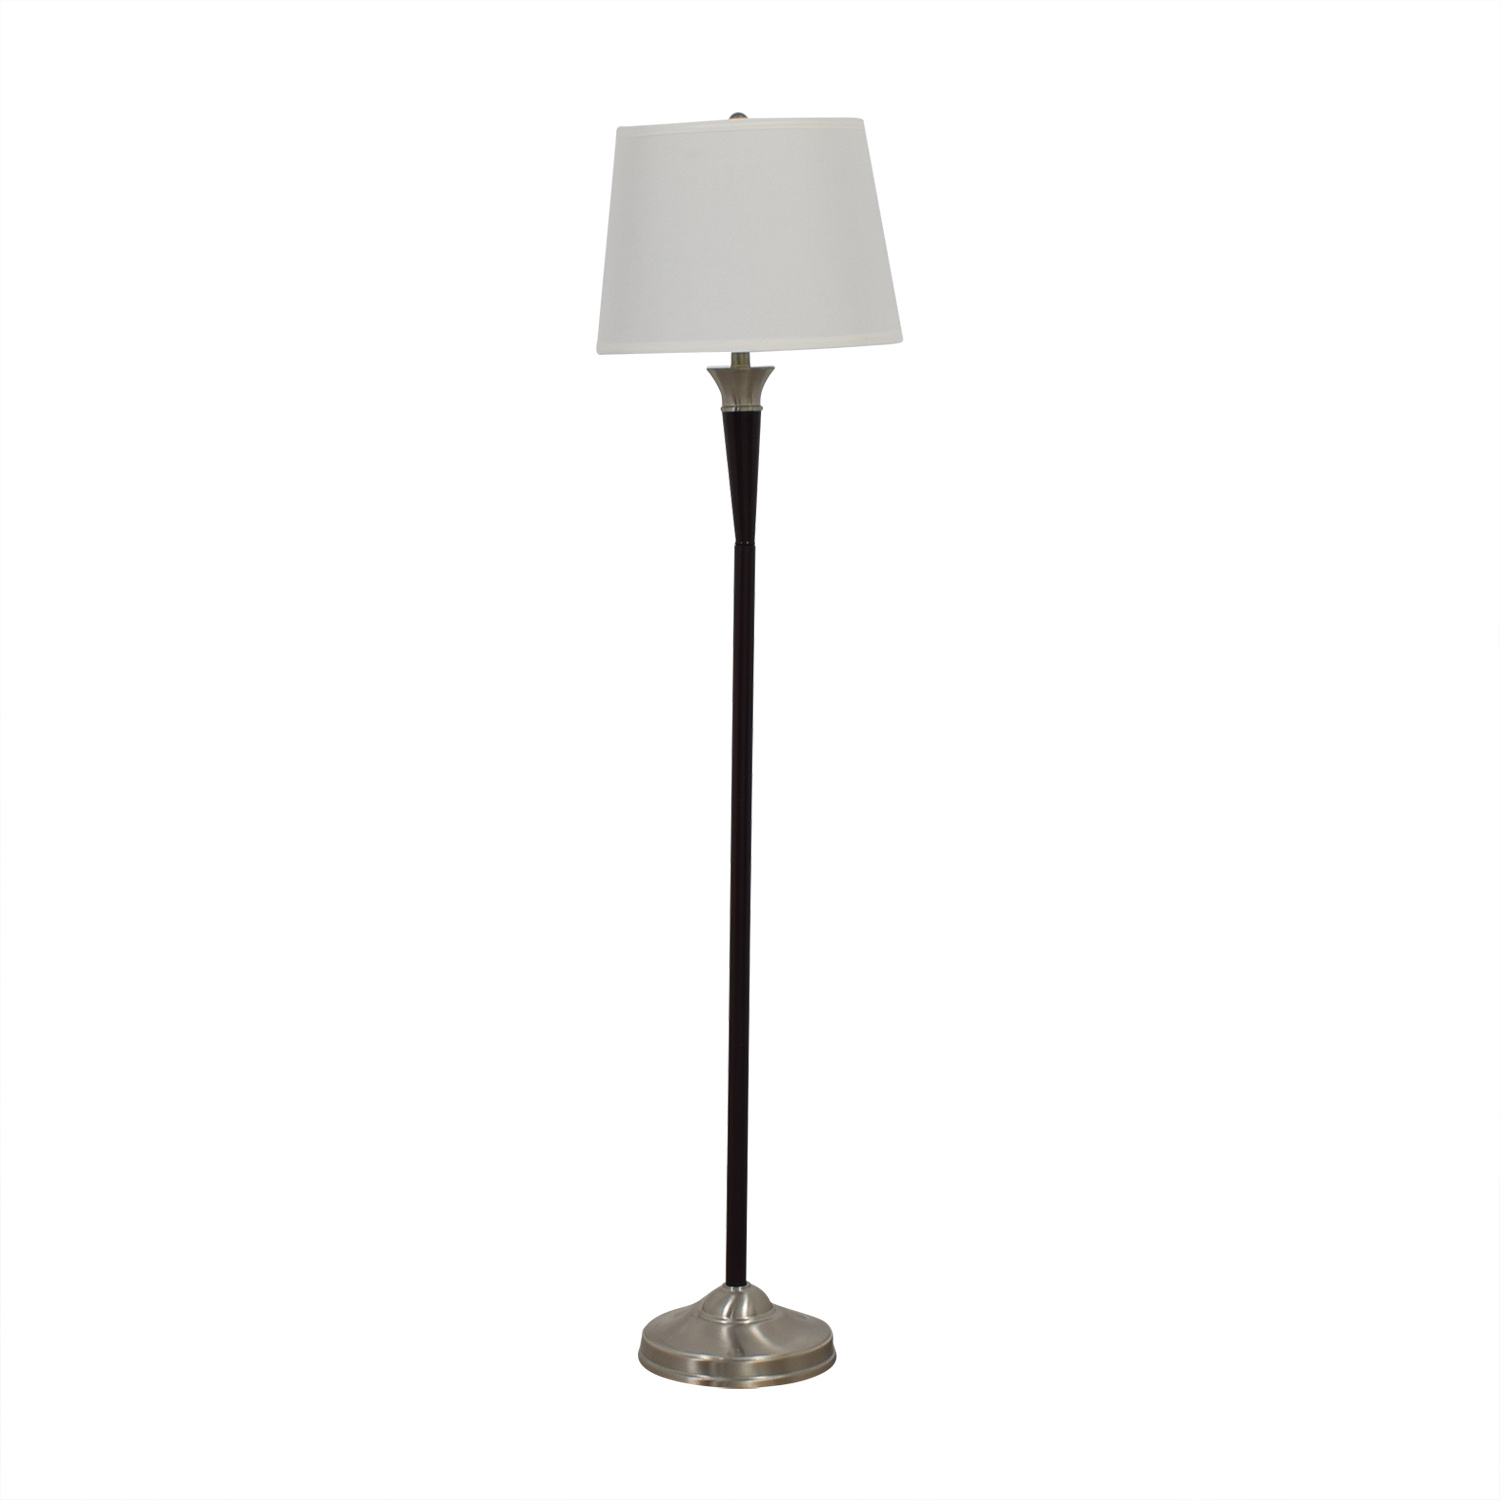 MCM Silver Finish Floor Lamp second hand